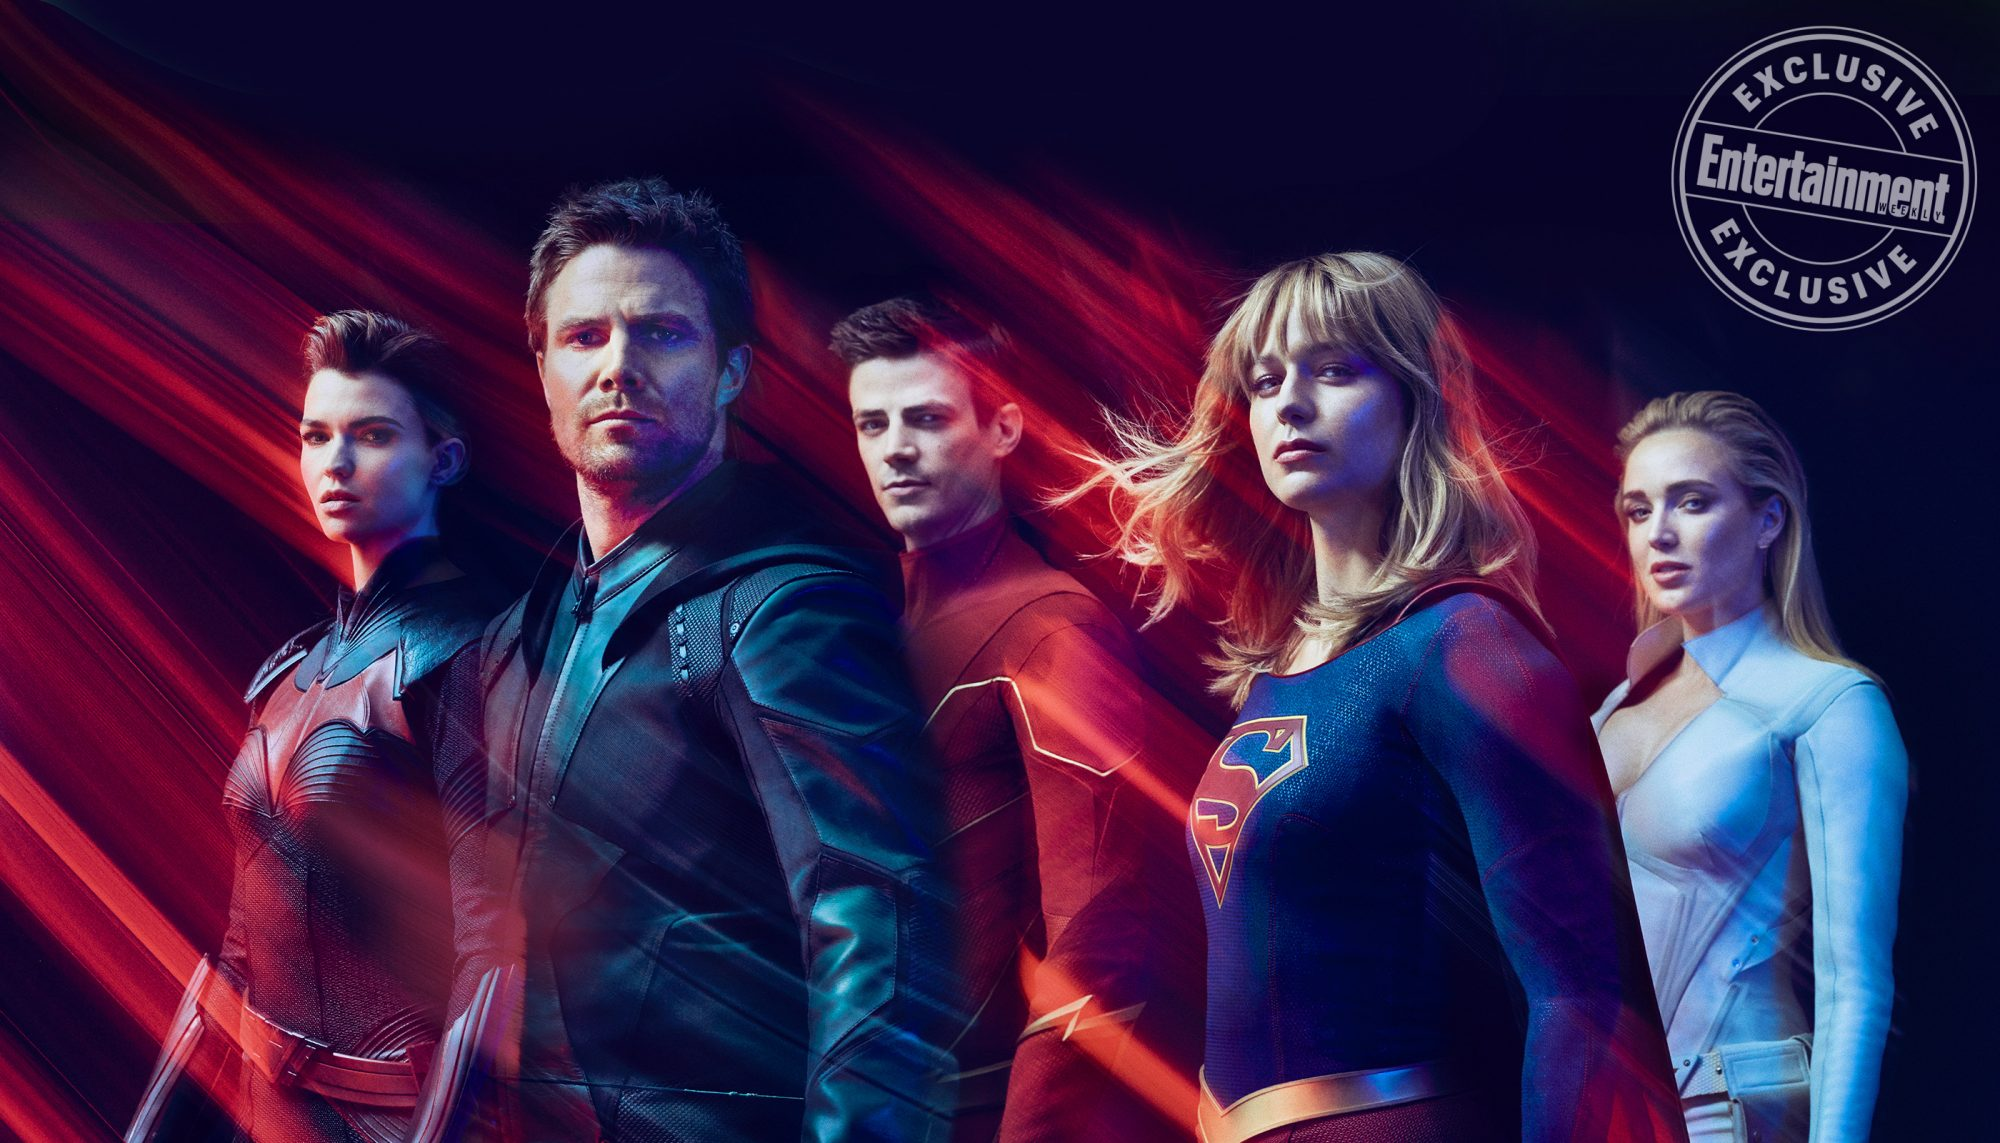 Ruby Rose as Batwoman, Stephen Amell as Green Arrow, Grant Gustin as The Flash, Melissa Benoist as Supergirl, and Caity Lotz as White Canary